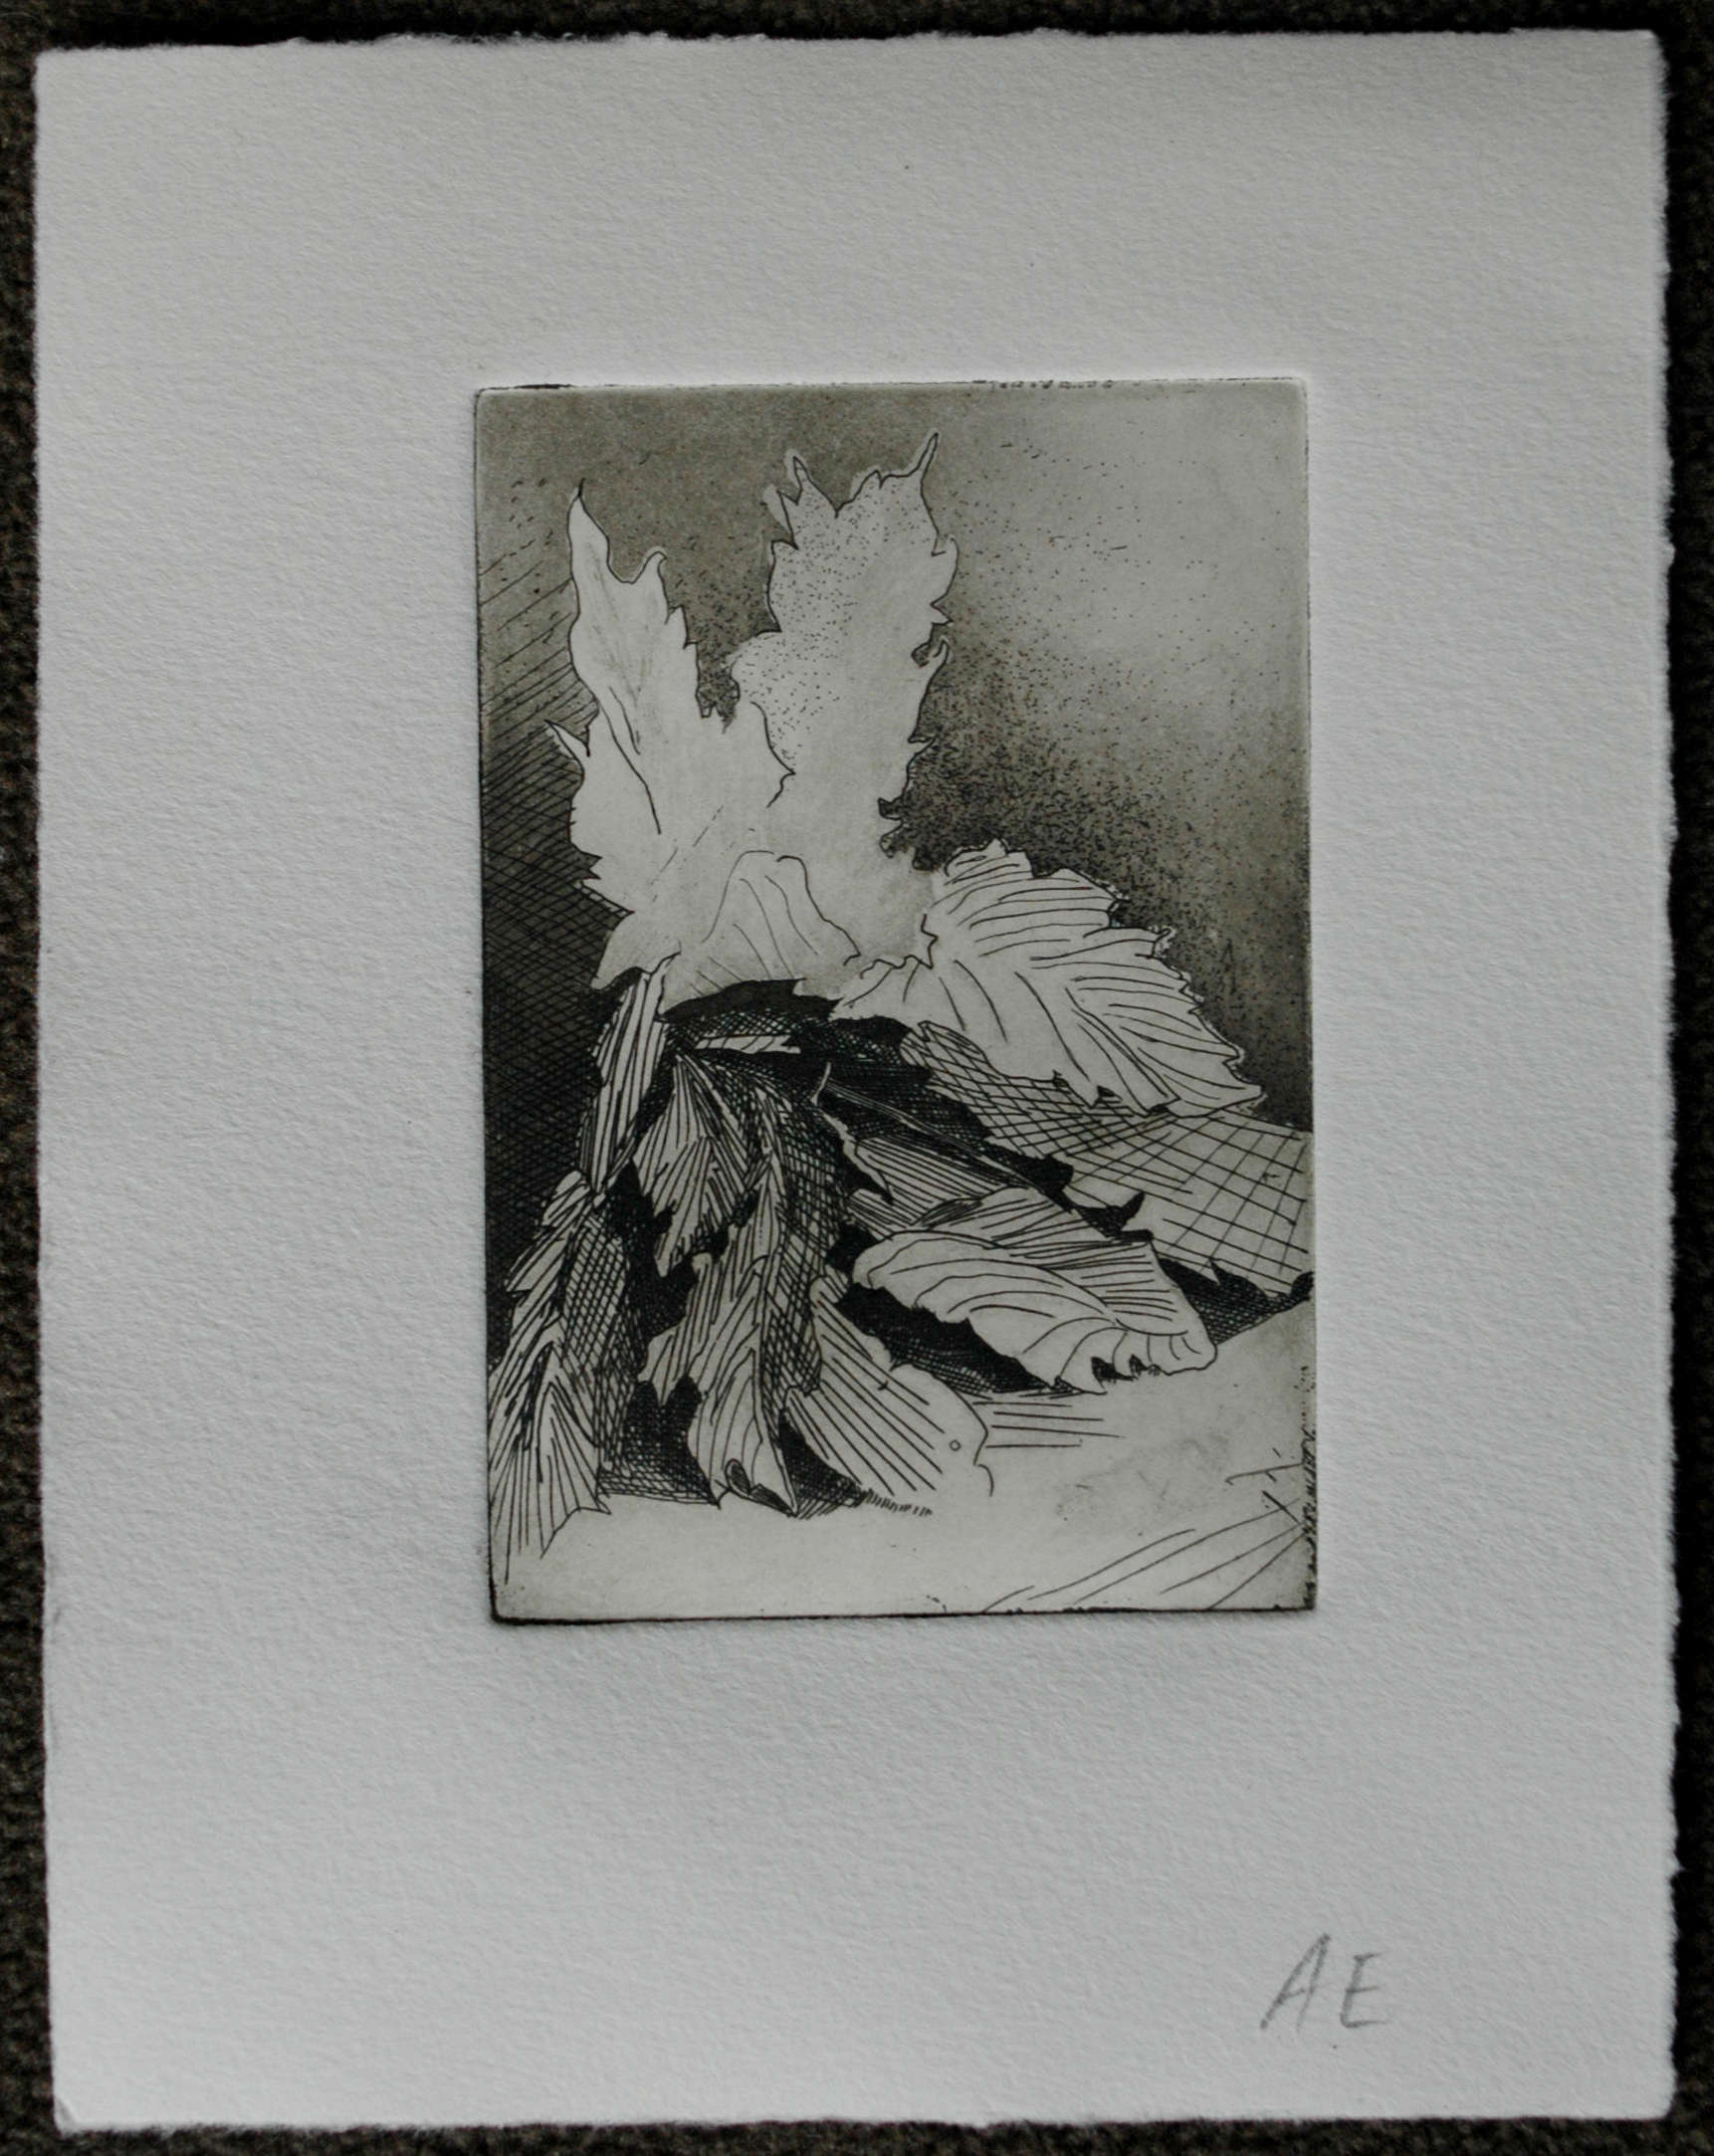 State 5: This print is the same as the last, only it was made with dark brown ink instead of black ink. The resulting print is a bit warmer than the previous.